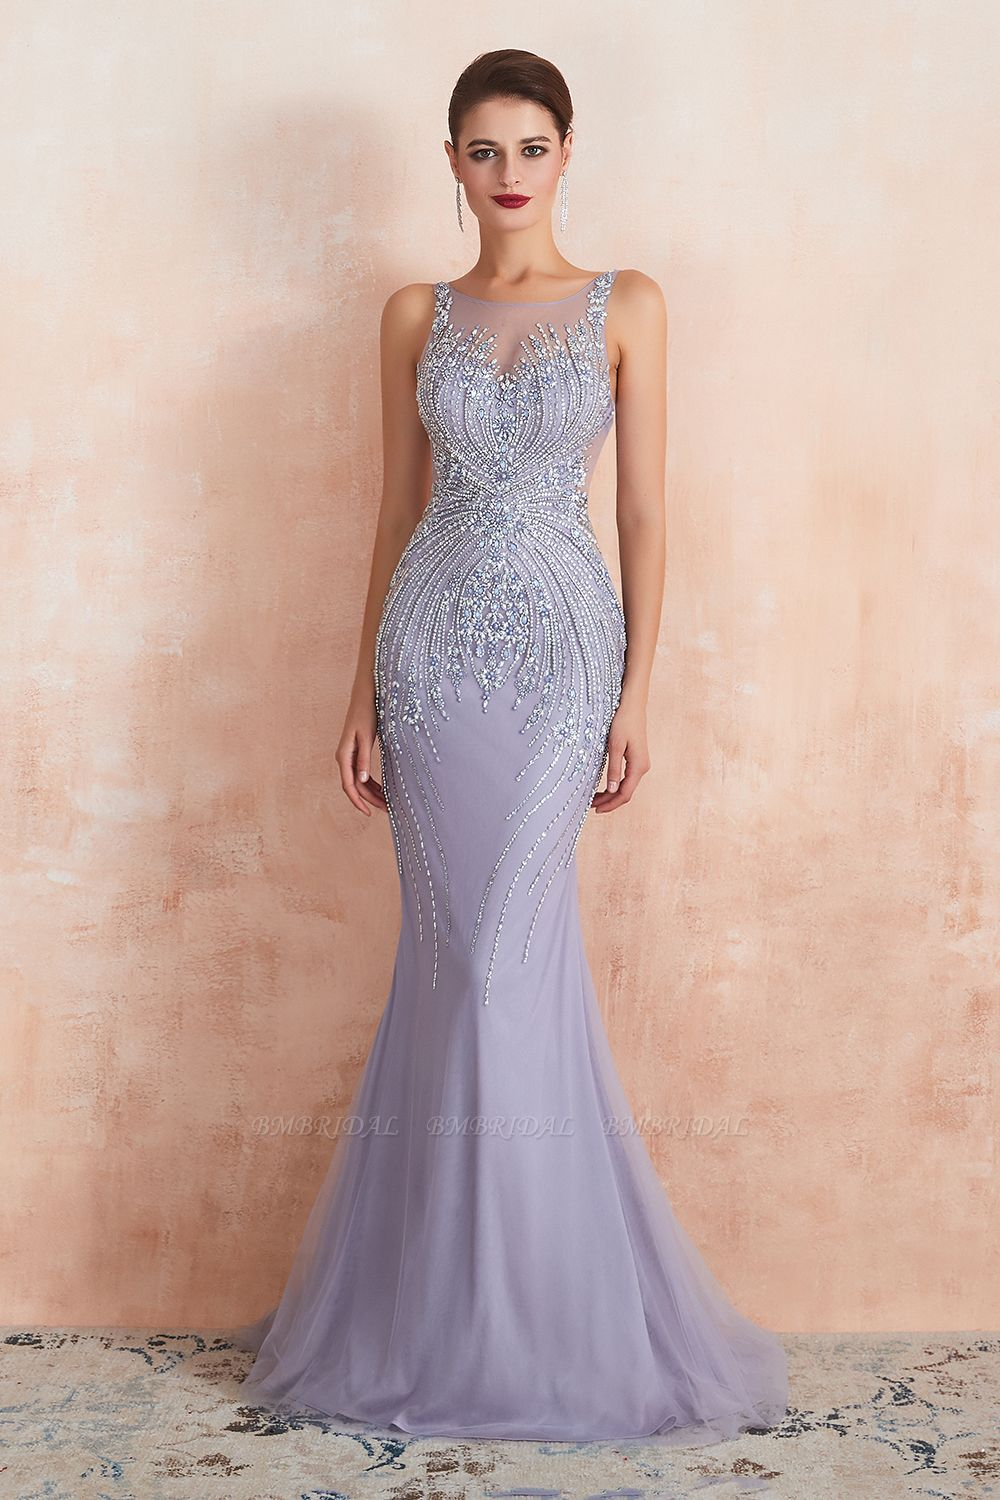 Luxurious Lilac Crystal Prom Dress Mermaid Long Evening Gowns